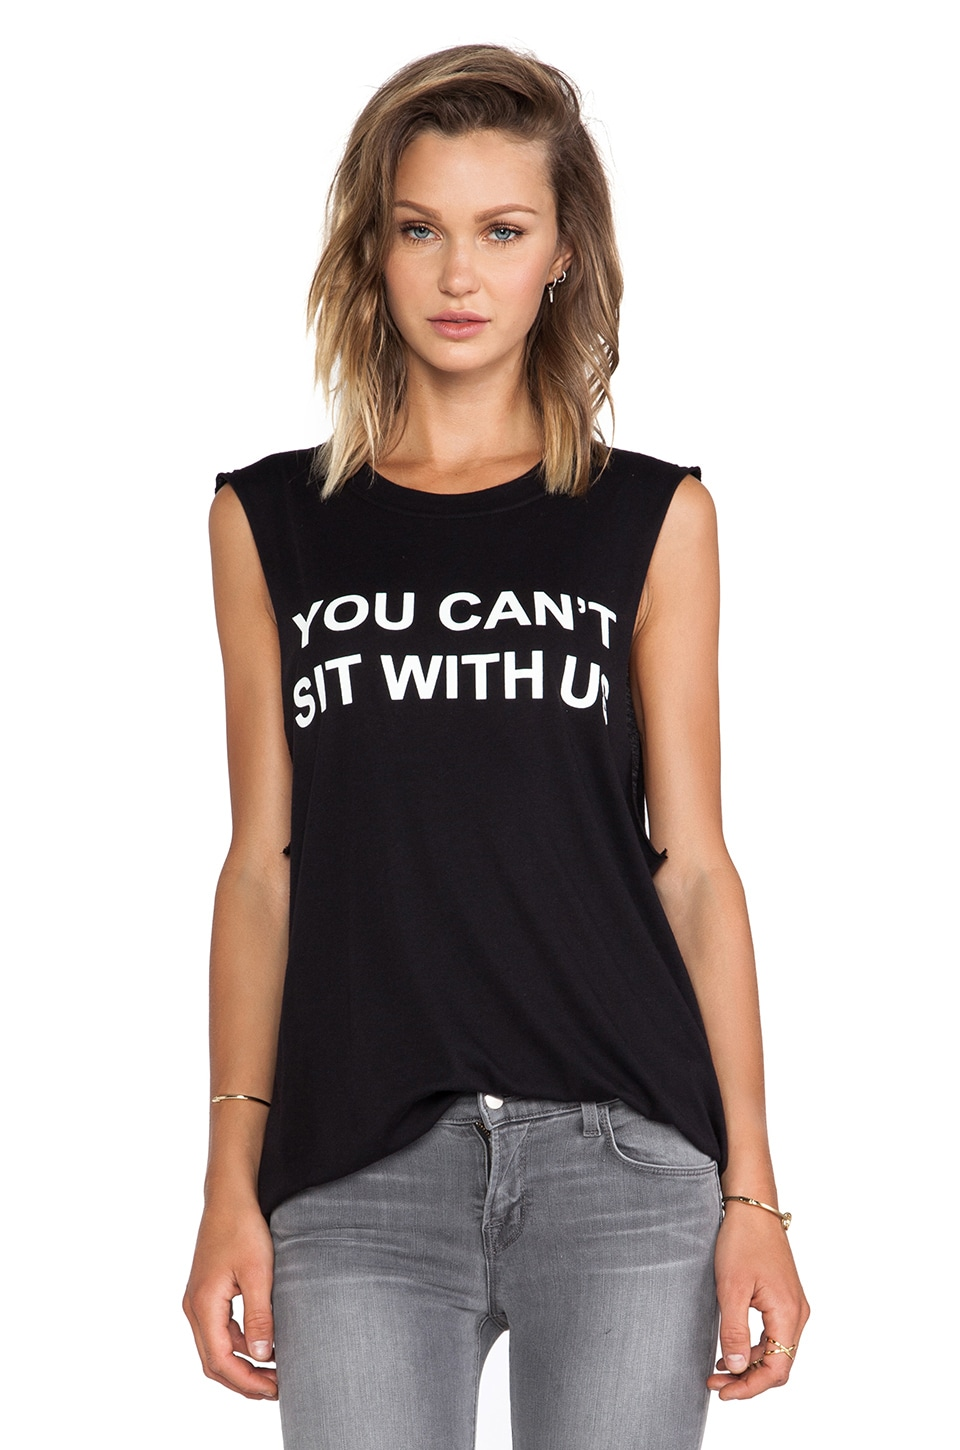 BLQ BASIQ BLQ Basics You Can't Sit With Us Graphic Tank in Black